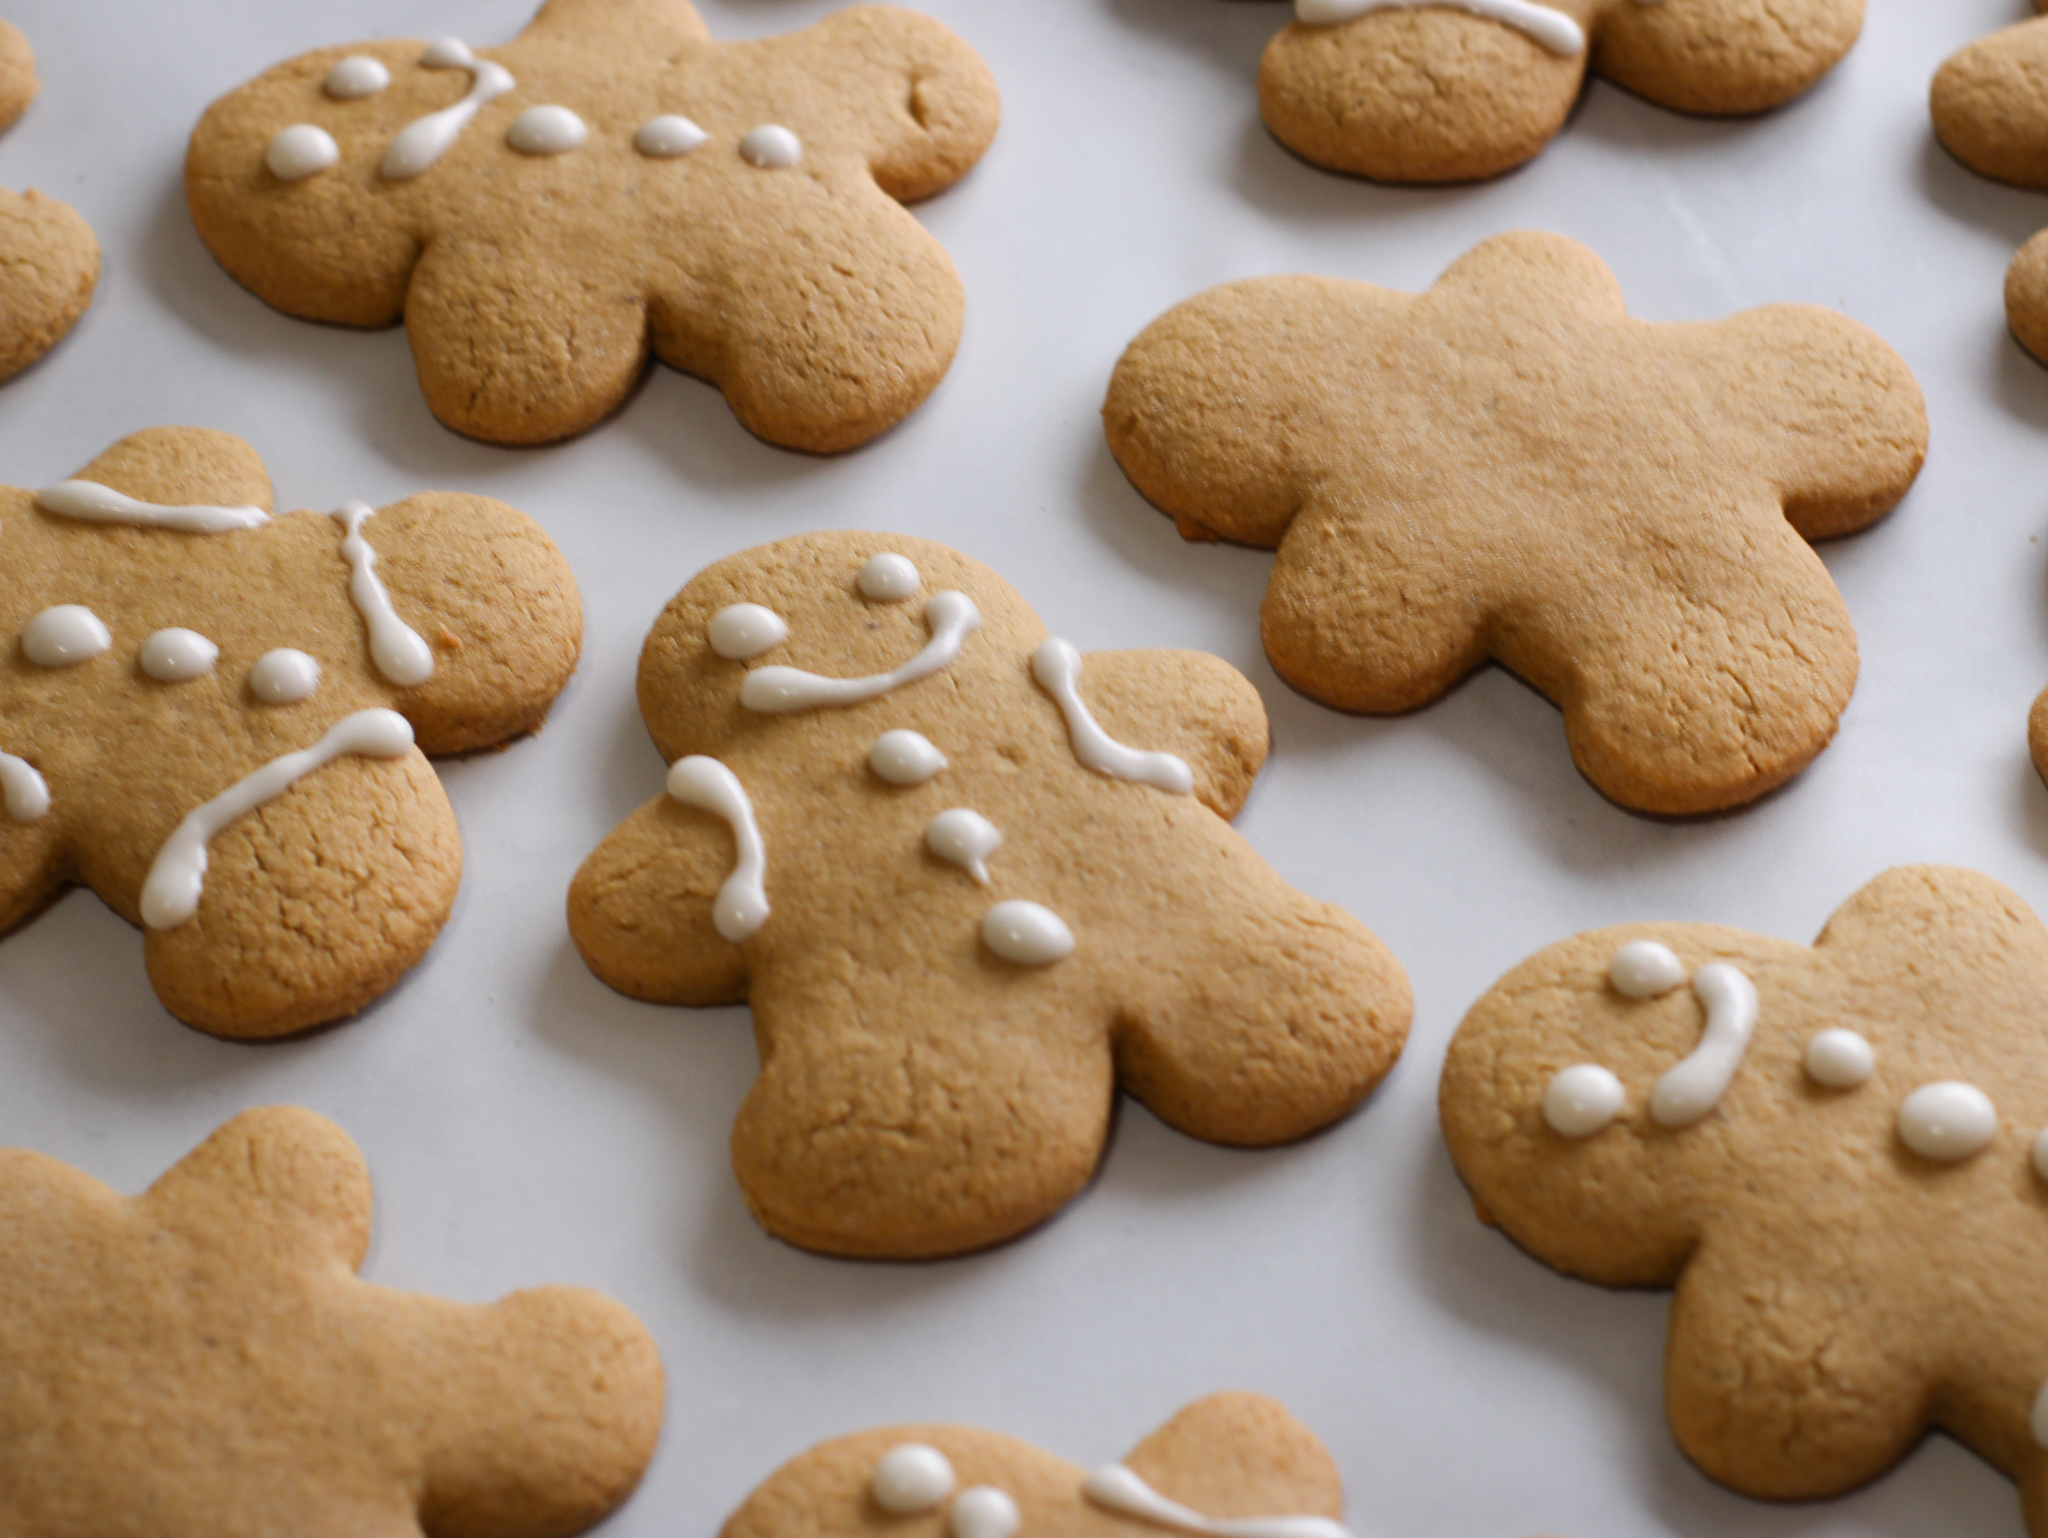 gluten free gingerbread cookies being decorated with white icing.